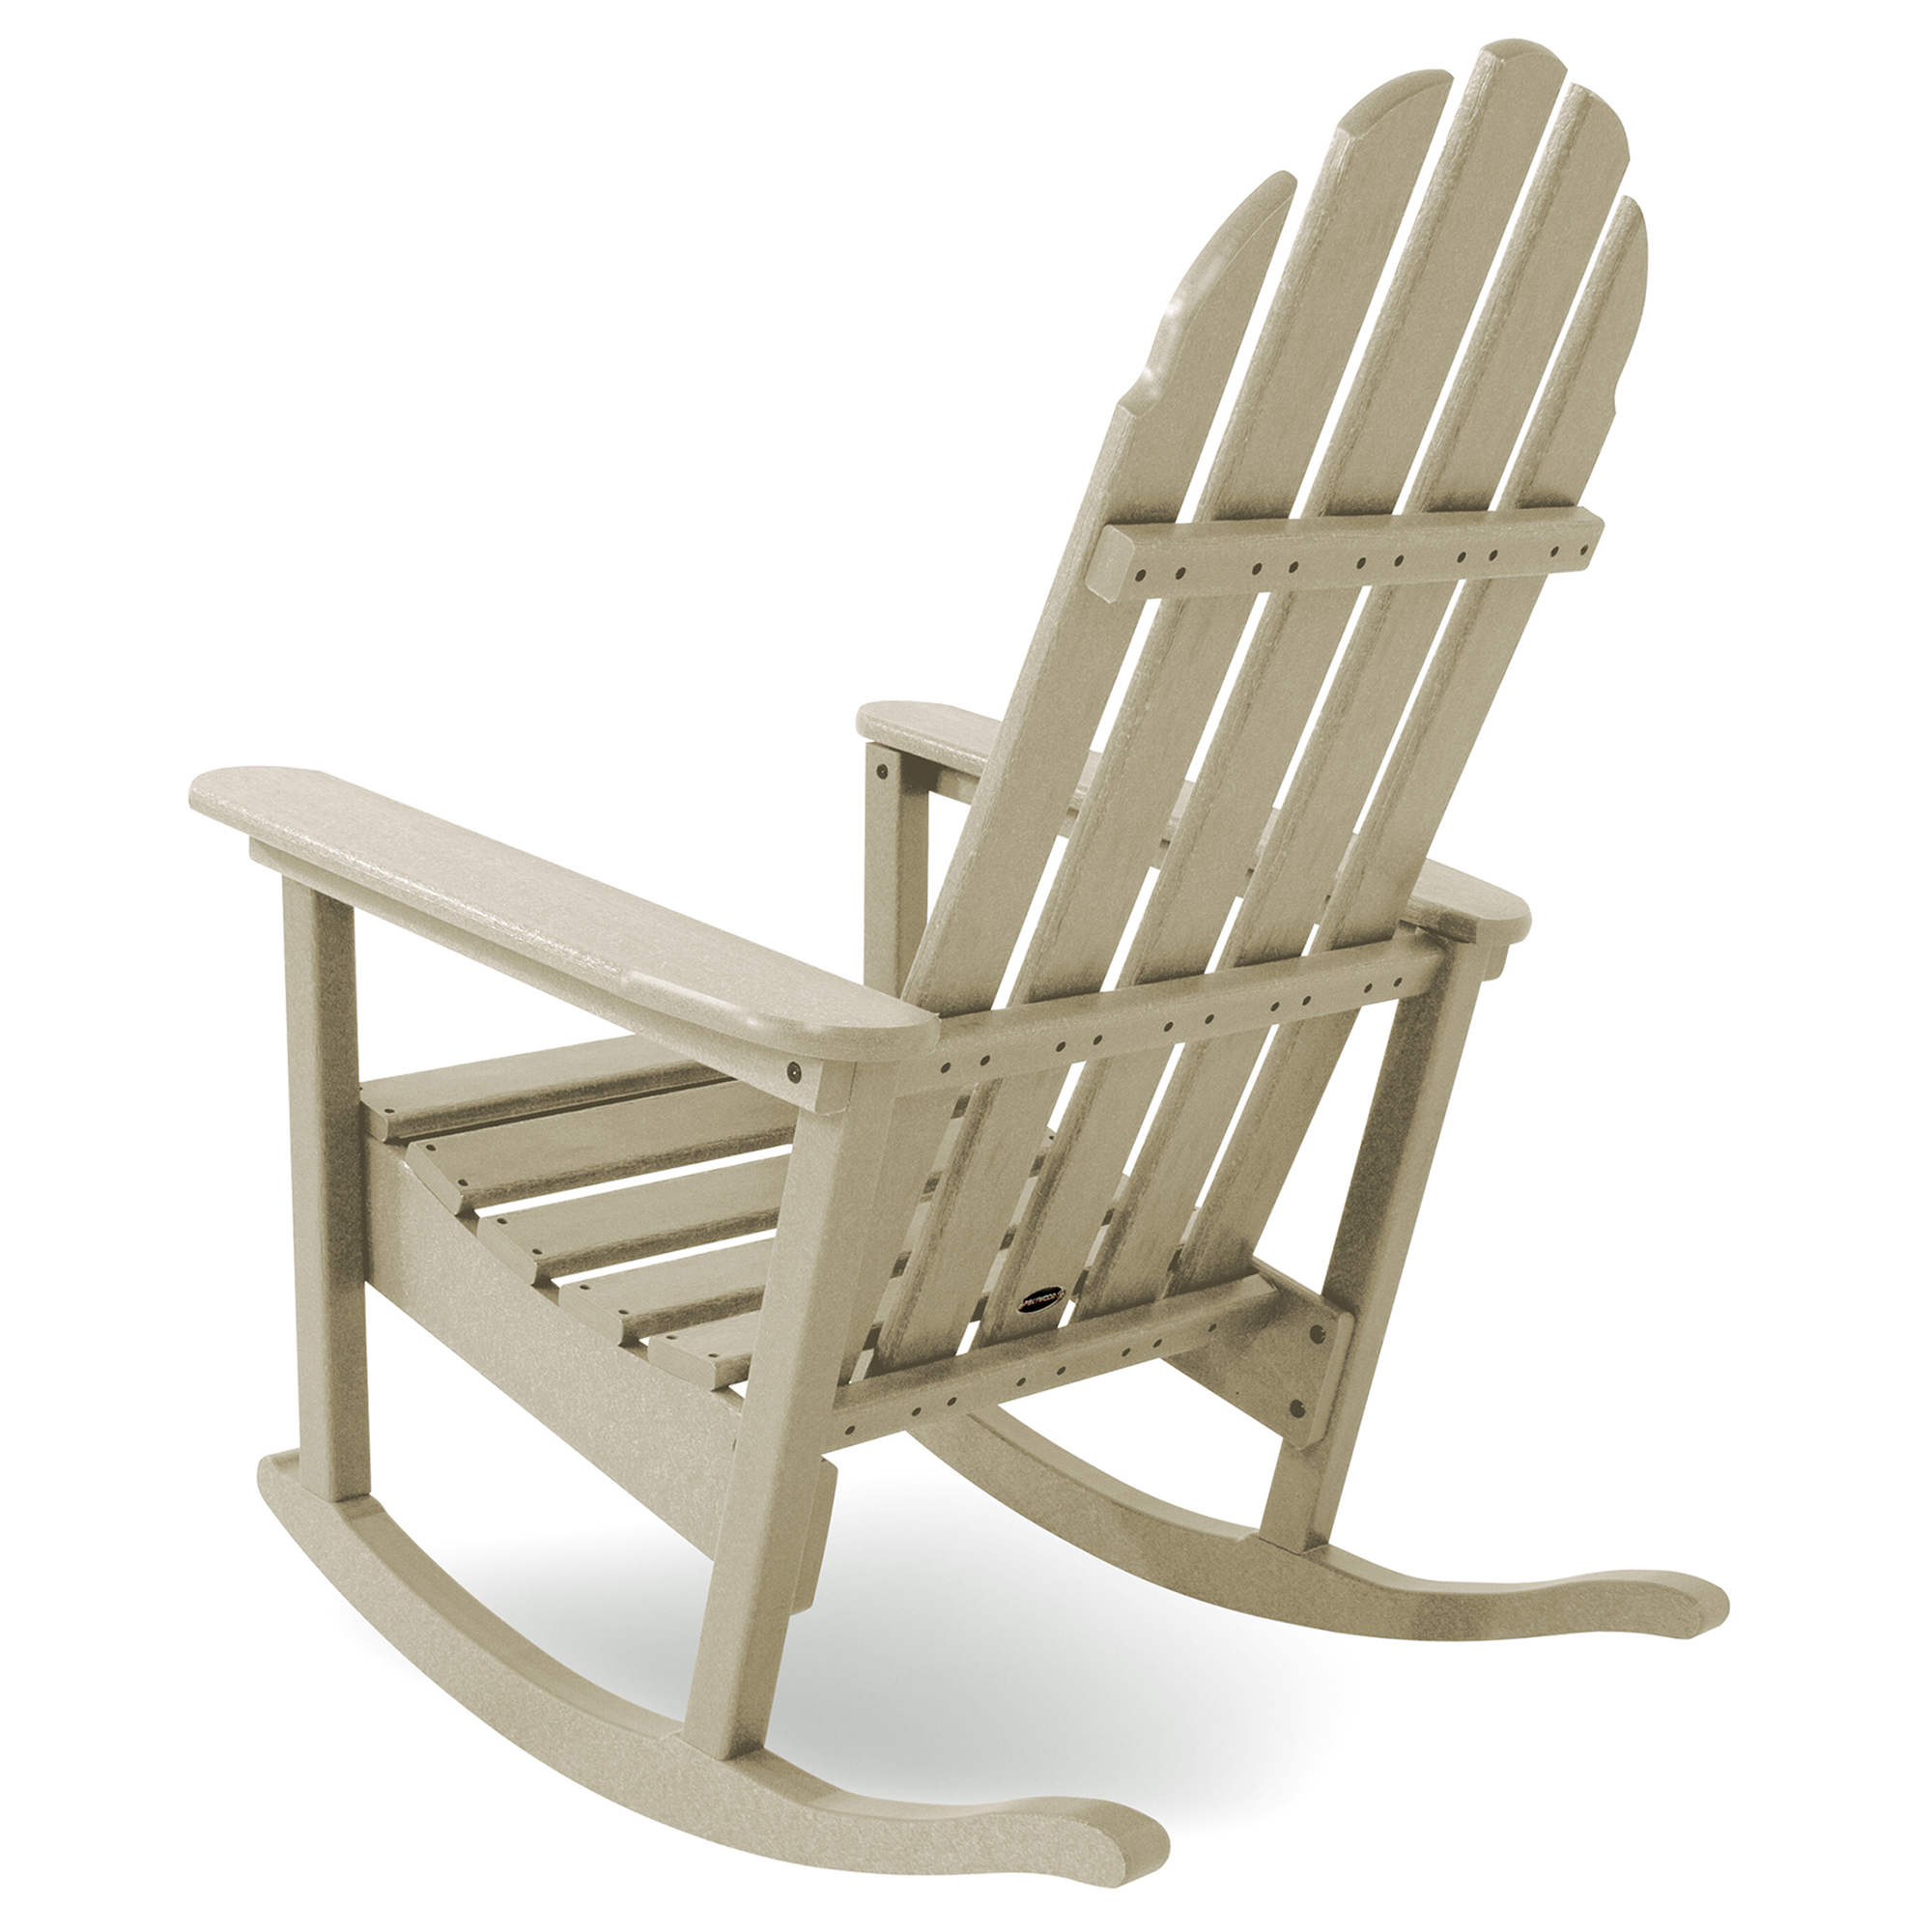 Beau POLYWOOD Reg; All Weather Adirondack Rocker | Home Furniture | Outdoor  Furniture | Rocking Chairs | Cracker Barrel Old Country Store   Cracker  Barrel Old ...